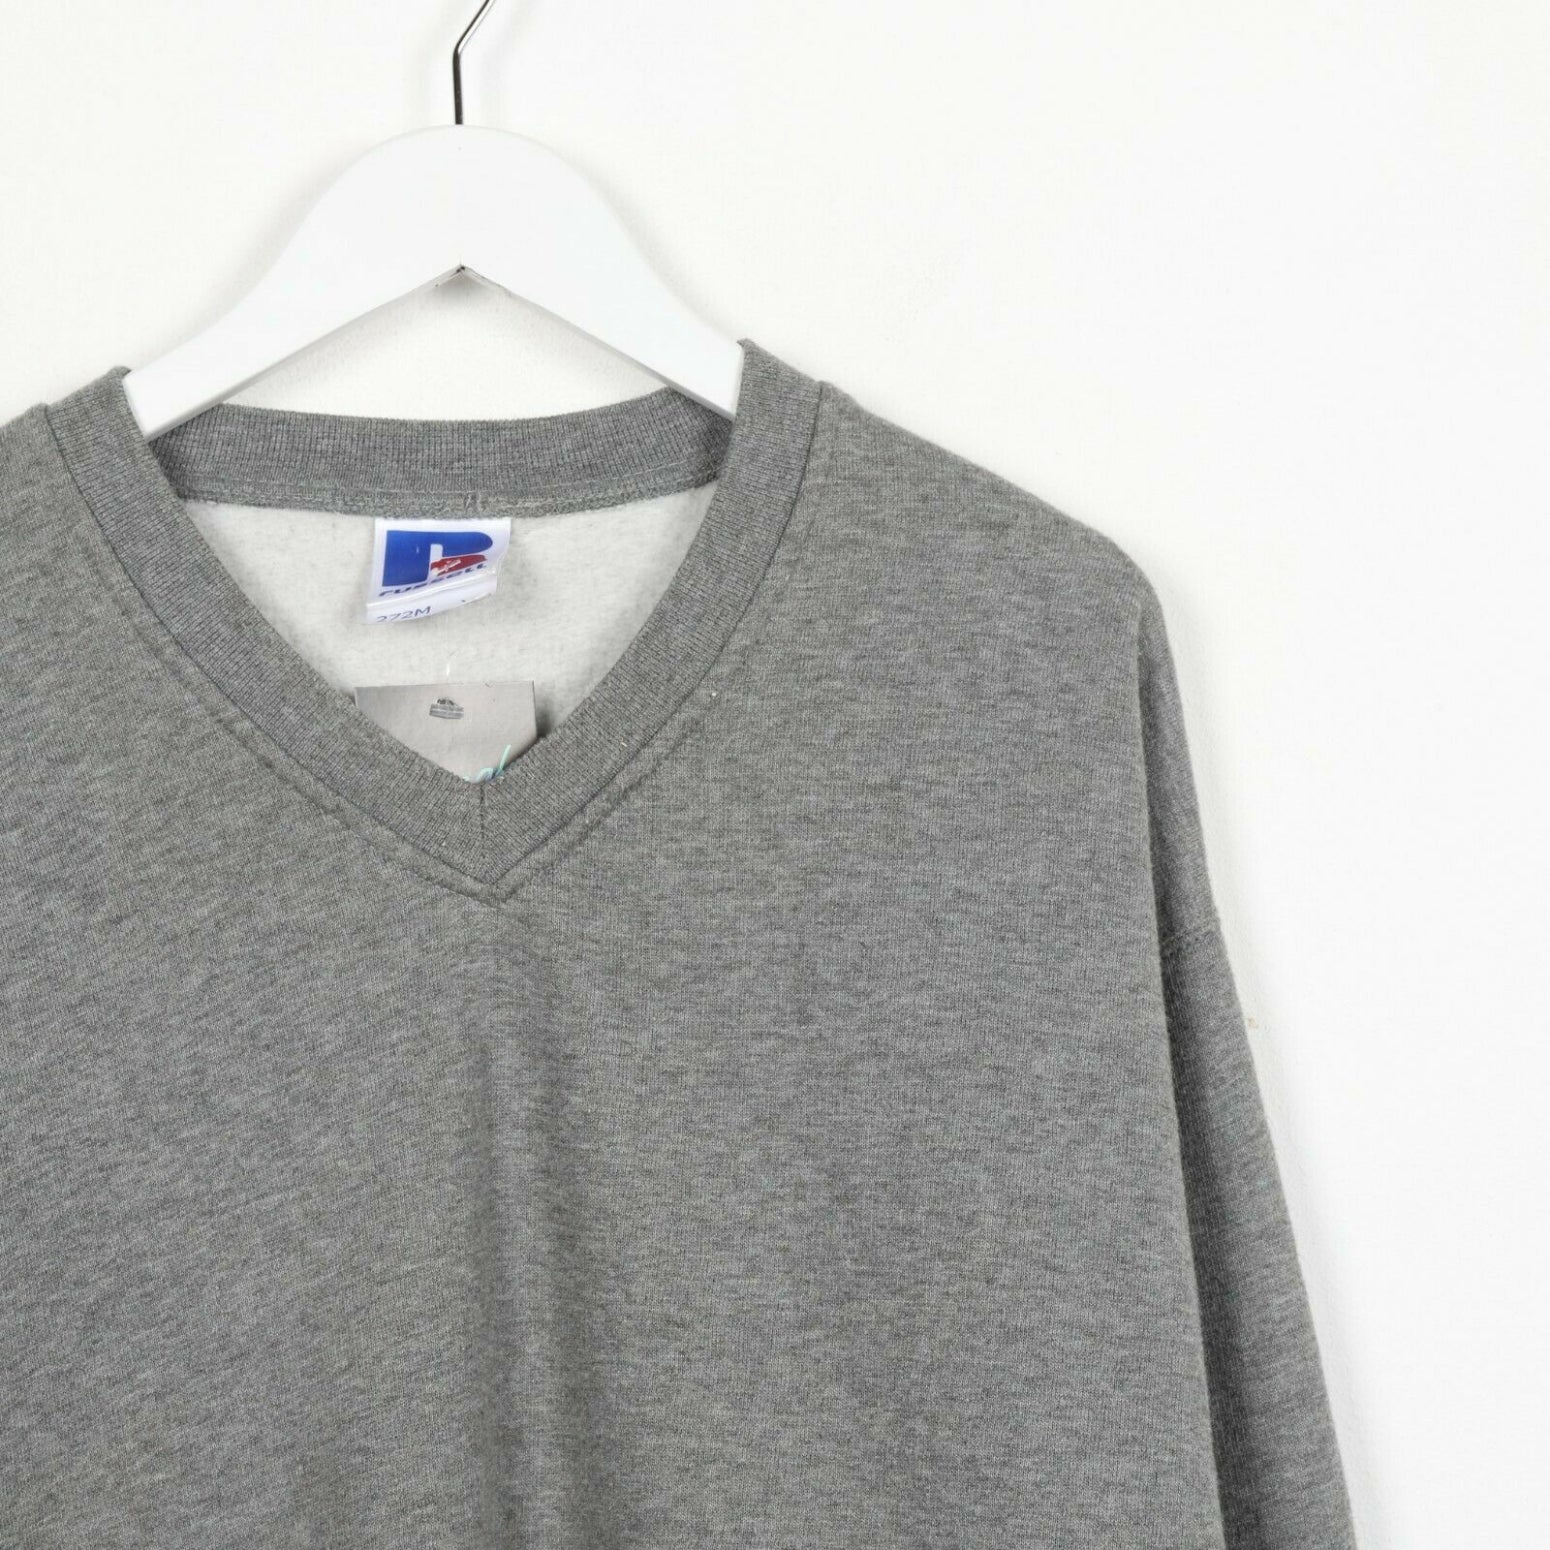 Vintage RUSSEL ATHLETIC Sweatshirt Jumper Grey XL